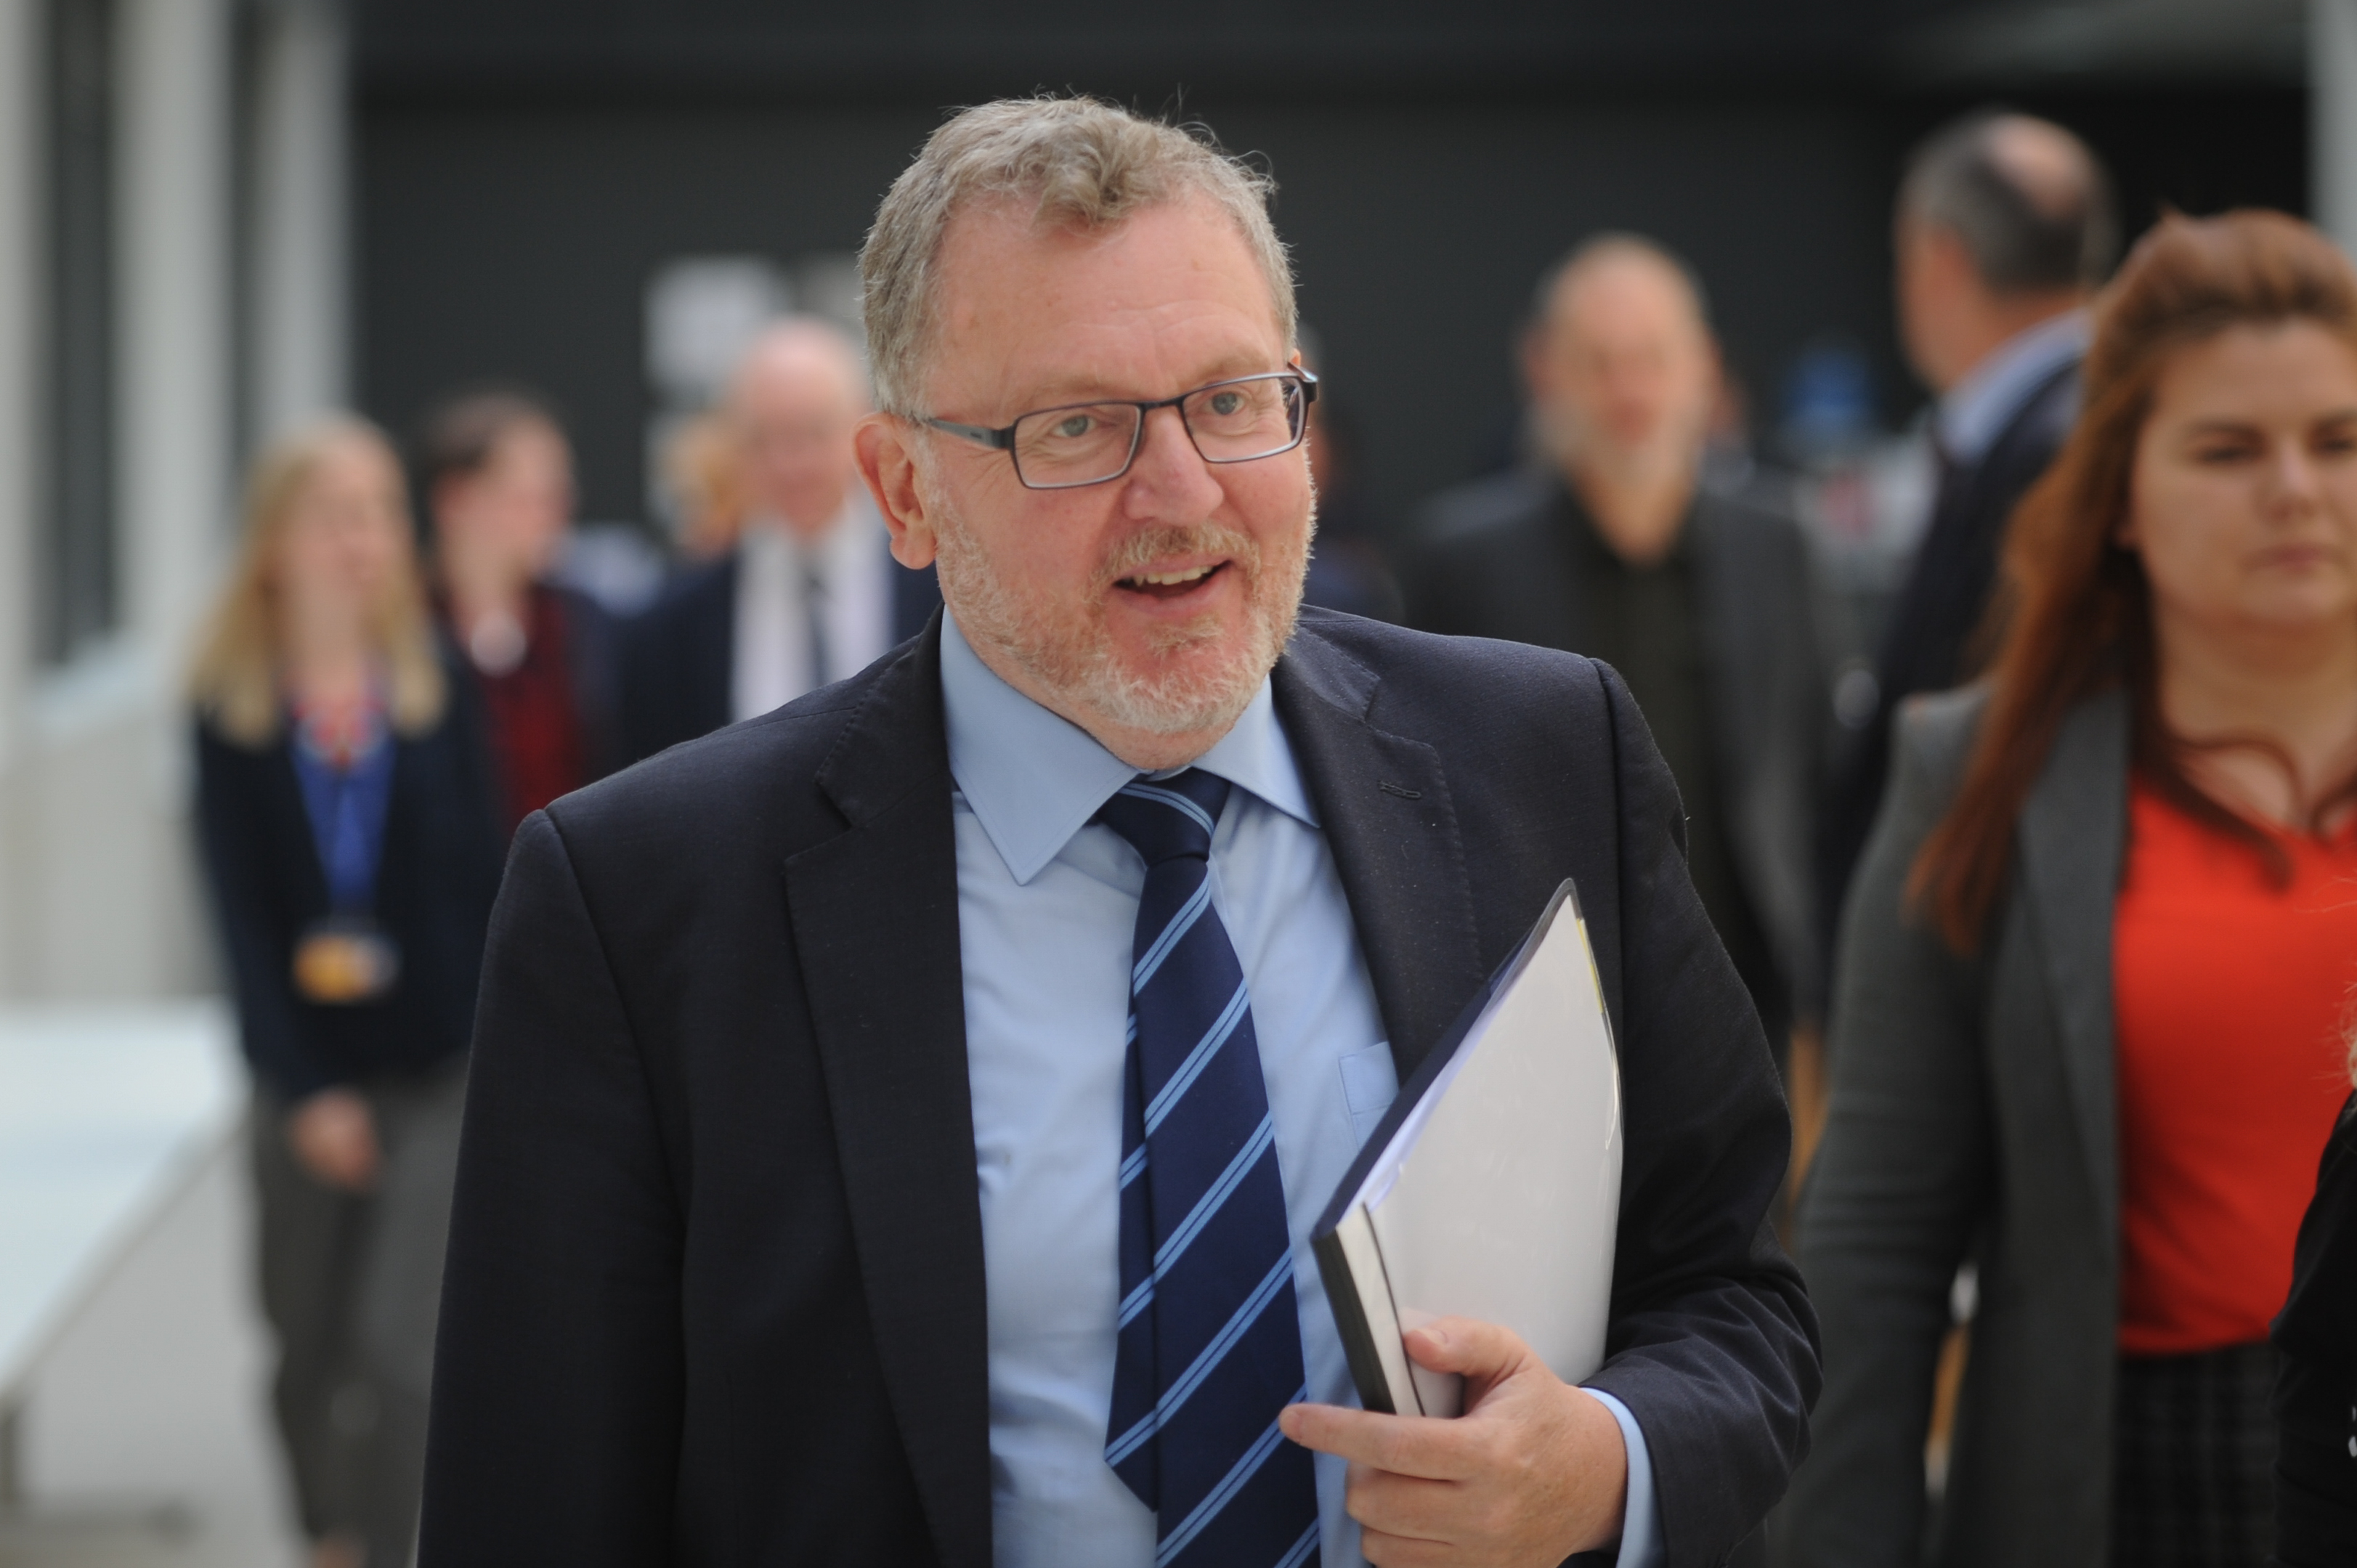 David Mundell in Dundee to discuss the Tay Cities Deal in 2018. He was, at one point, the only Tory MP in Scotland.